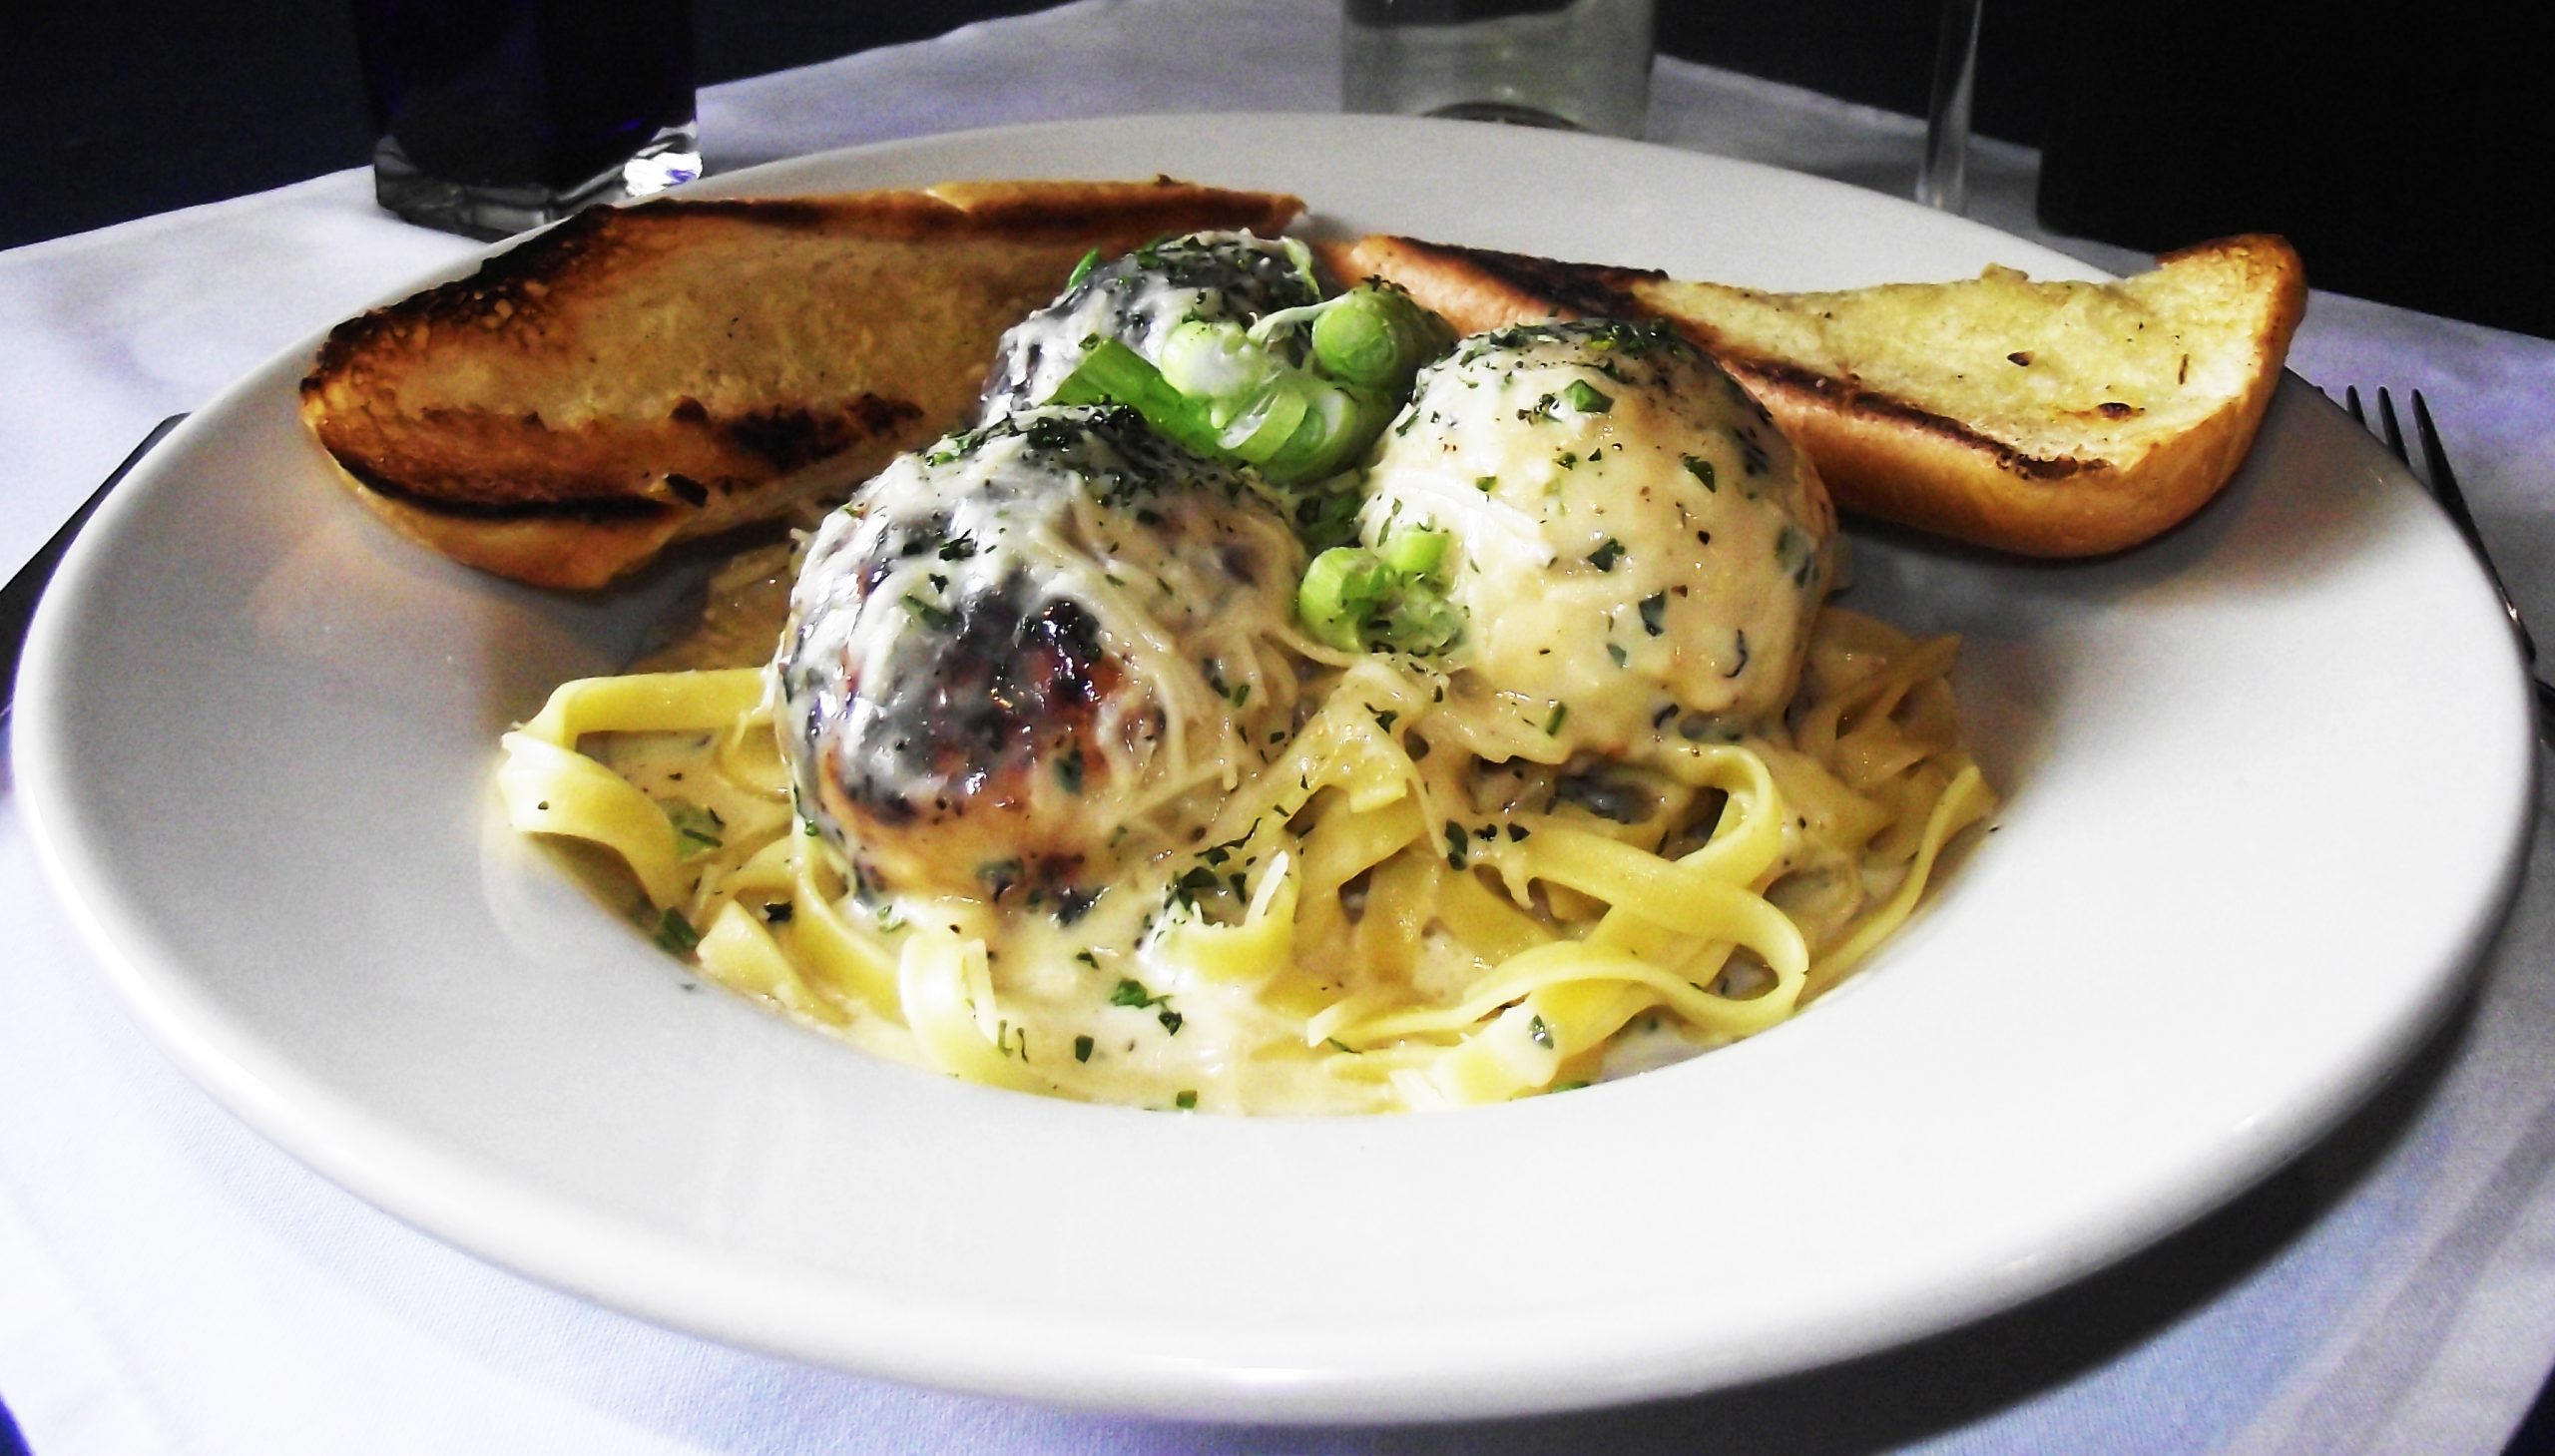 Jake and Telly's Specials - Chicken Meatball Pasta